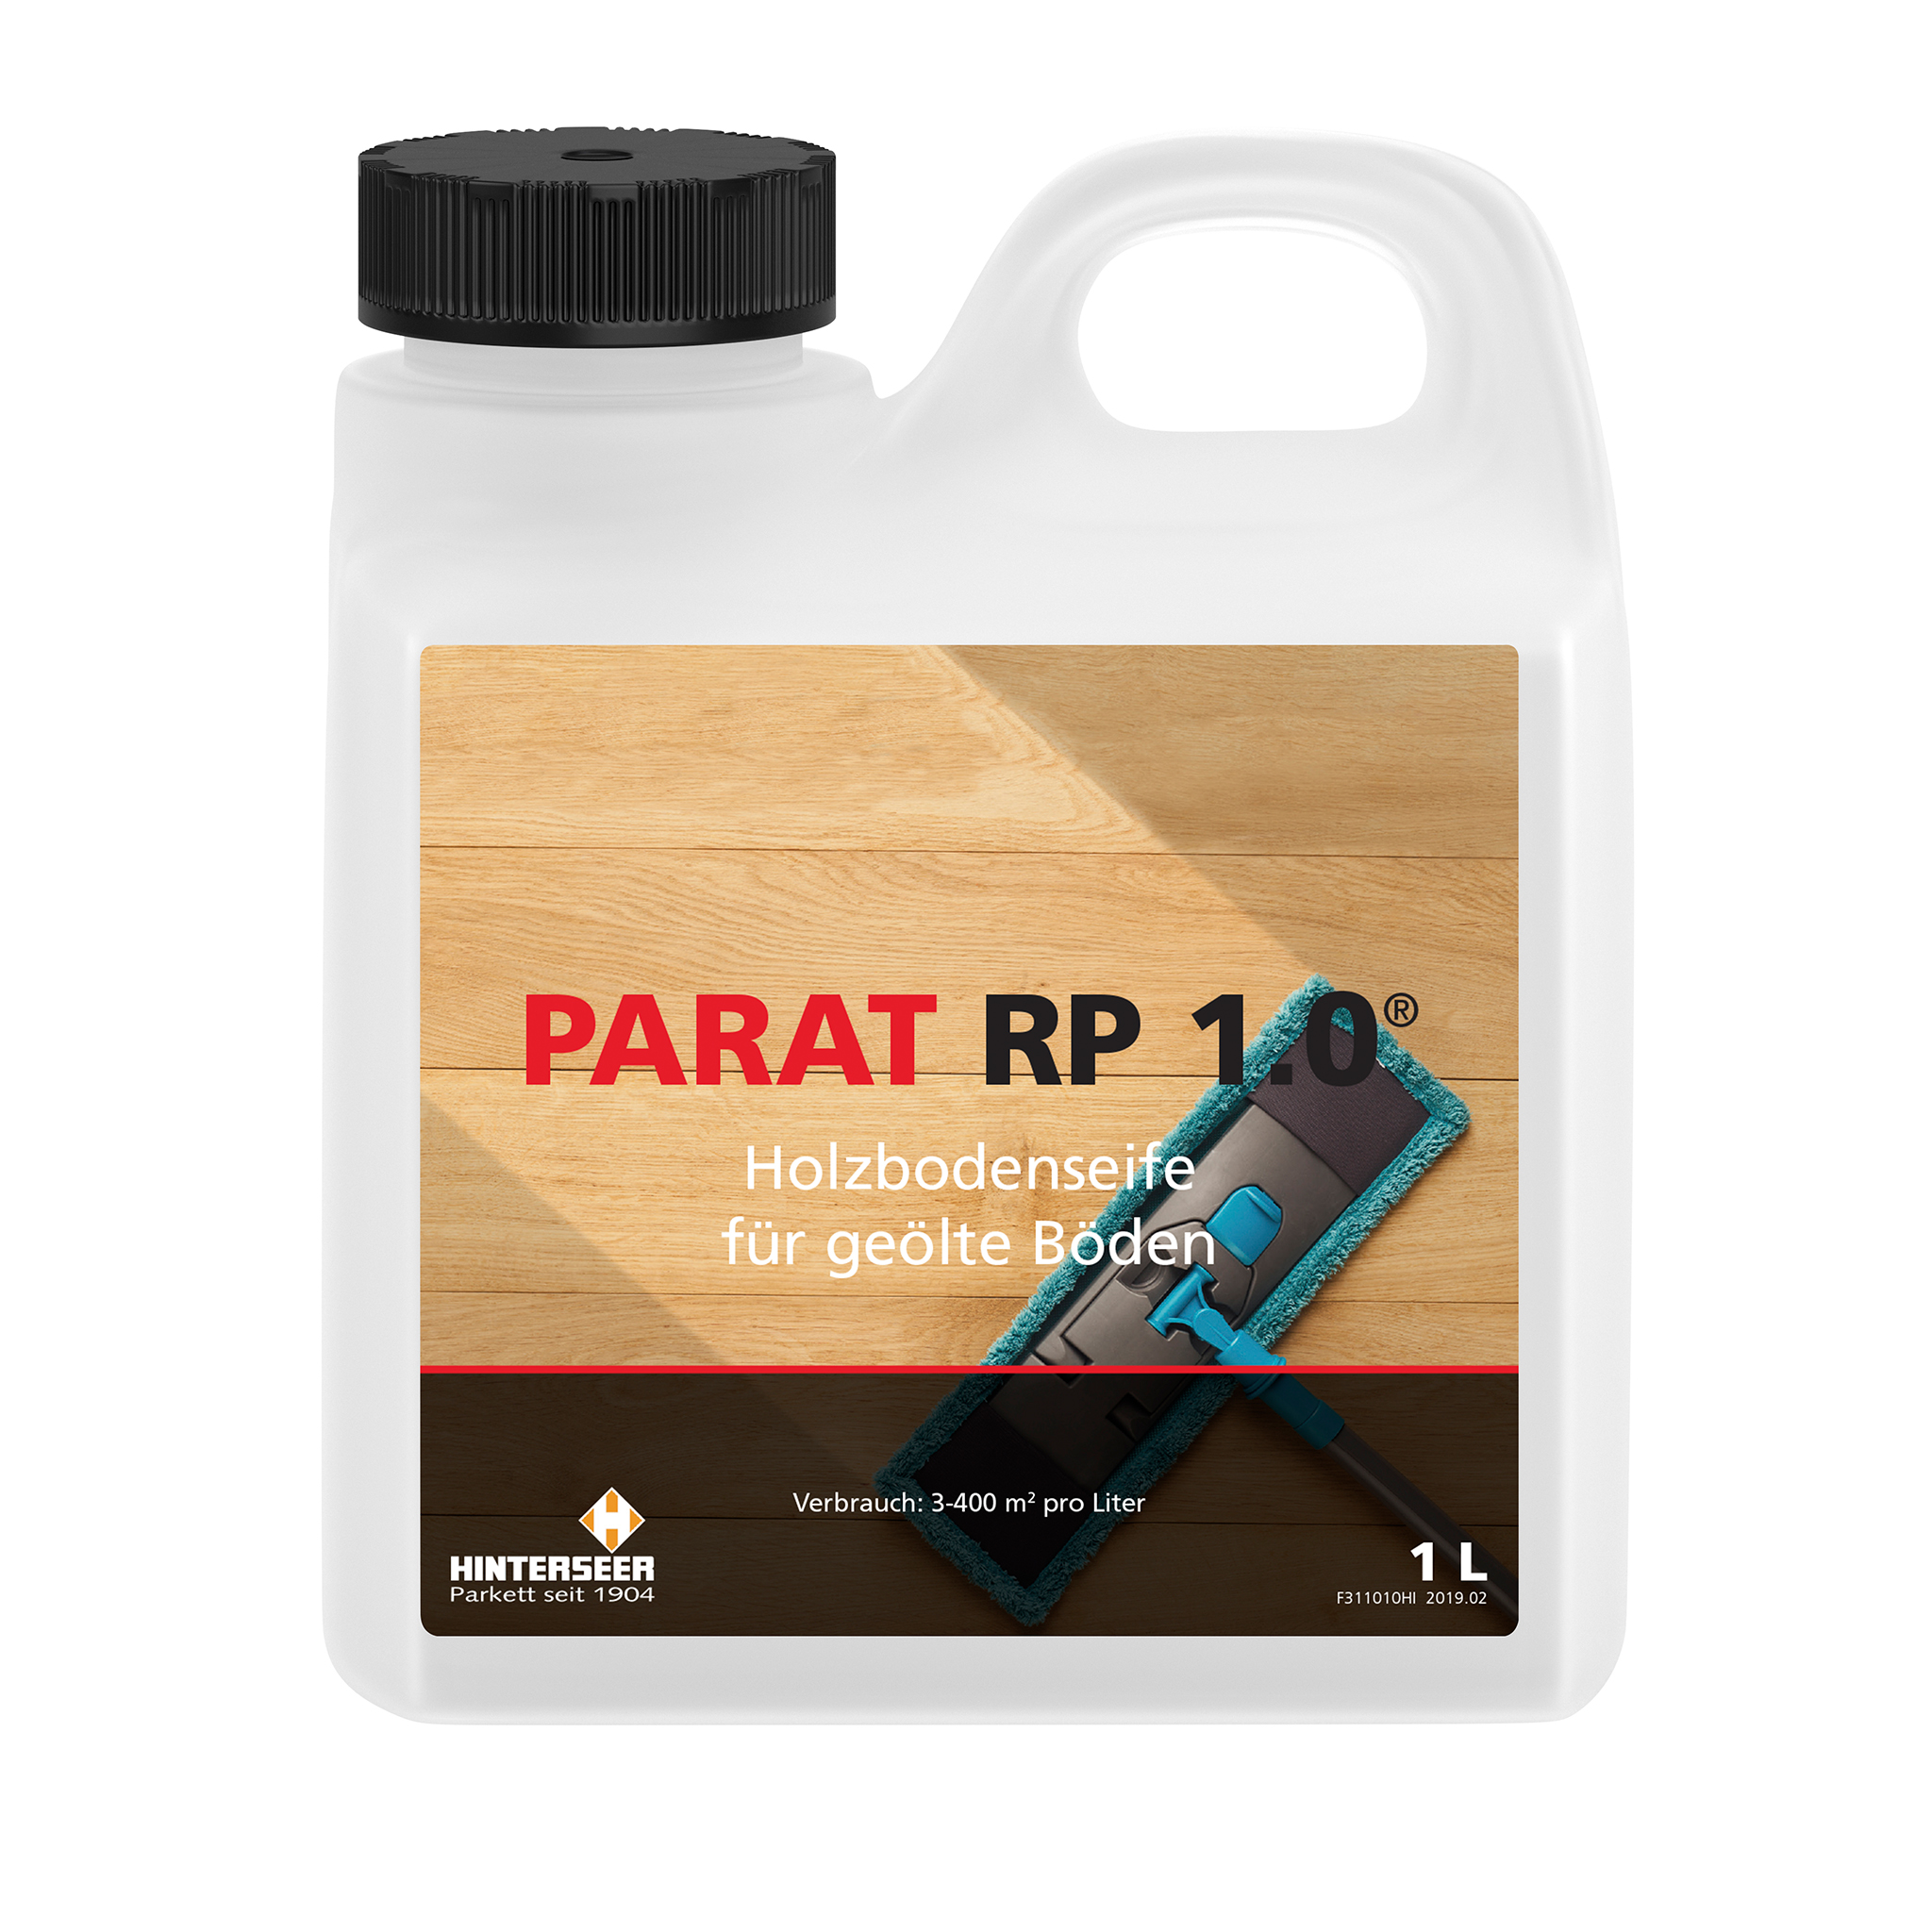 PARAT RP 1.0 Holzbodenseife 1 Ltr.